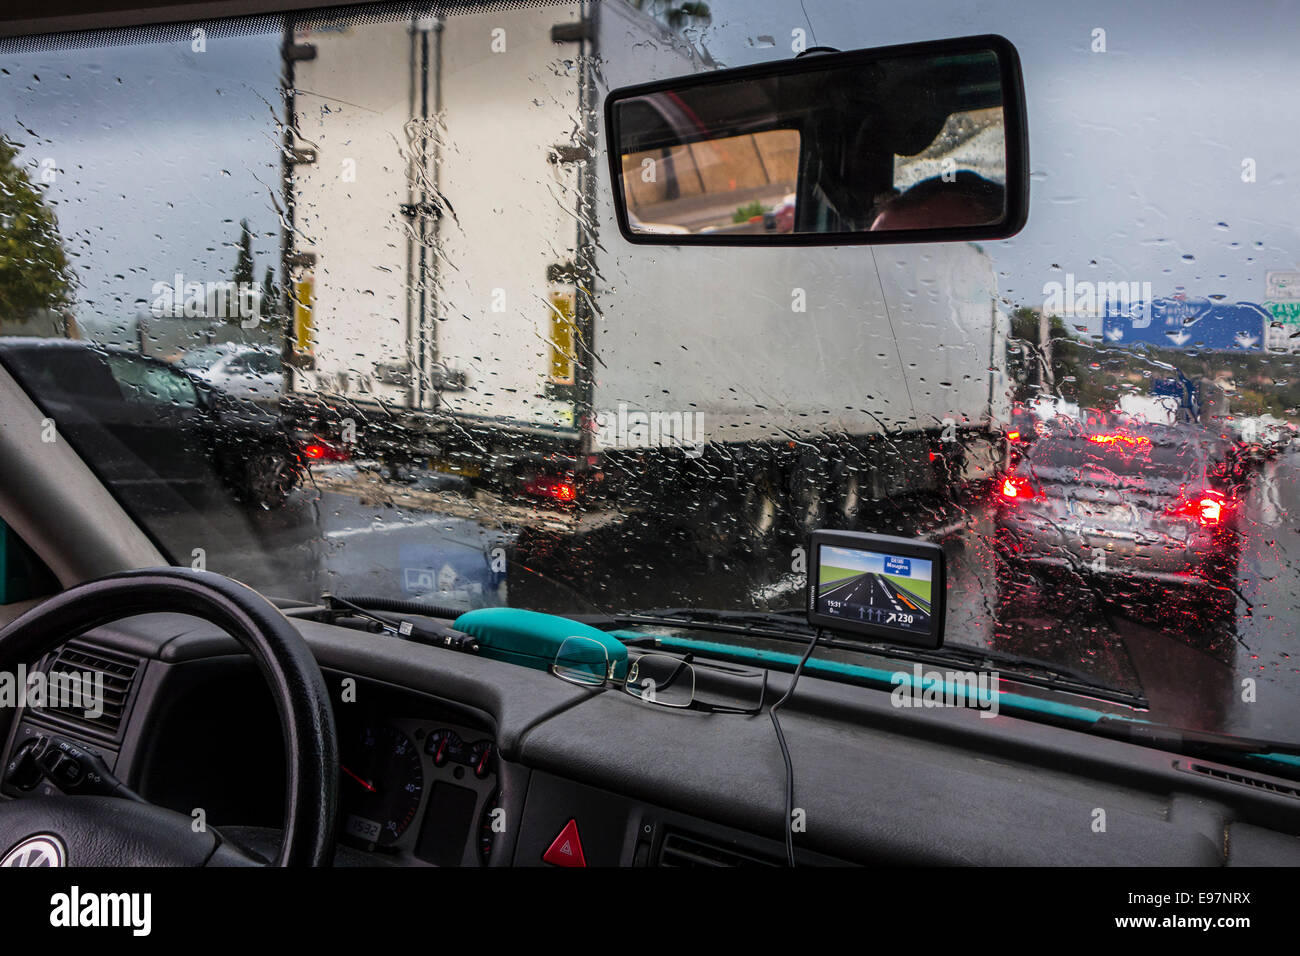 truck overtaking cars on highway during heavy rain shower seen from stock photo royalty free. Black Bedroom Furniture Sets. Home Design Ideas